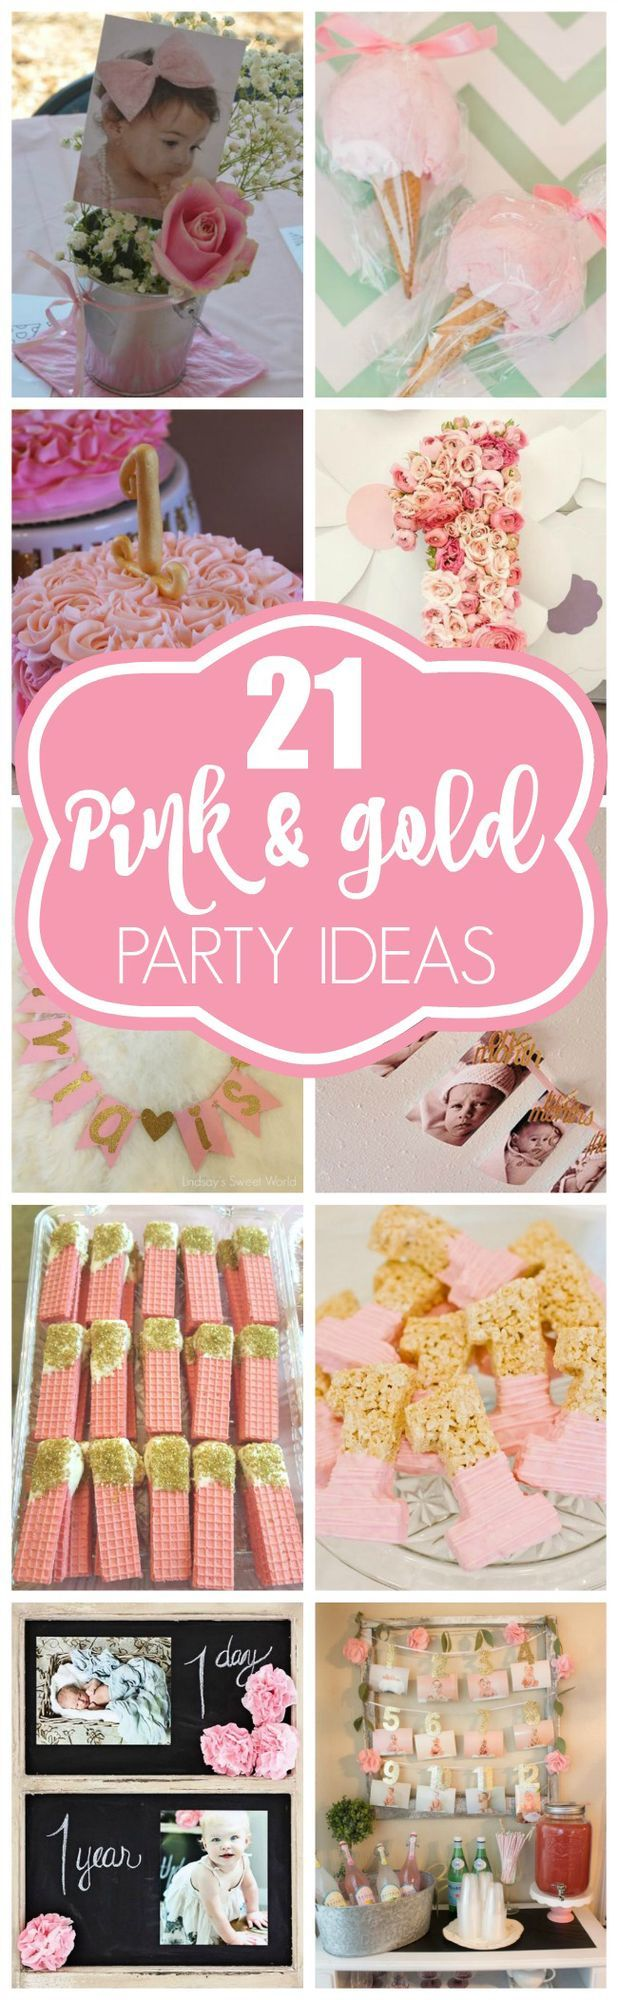 21 Pink and Gold First Birthday Party Ideas   Pretty My Party   Bloglovin'